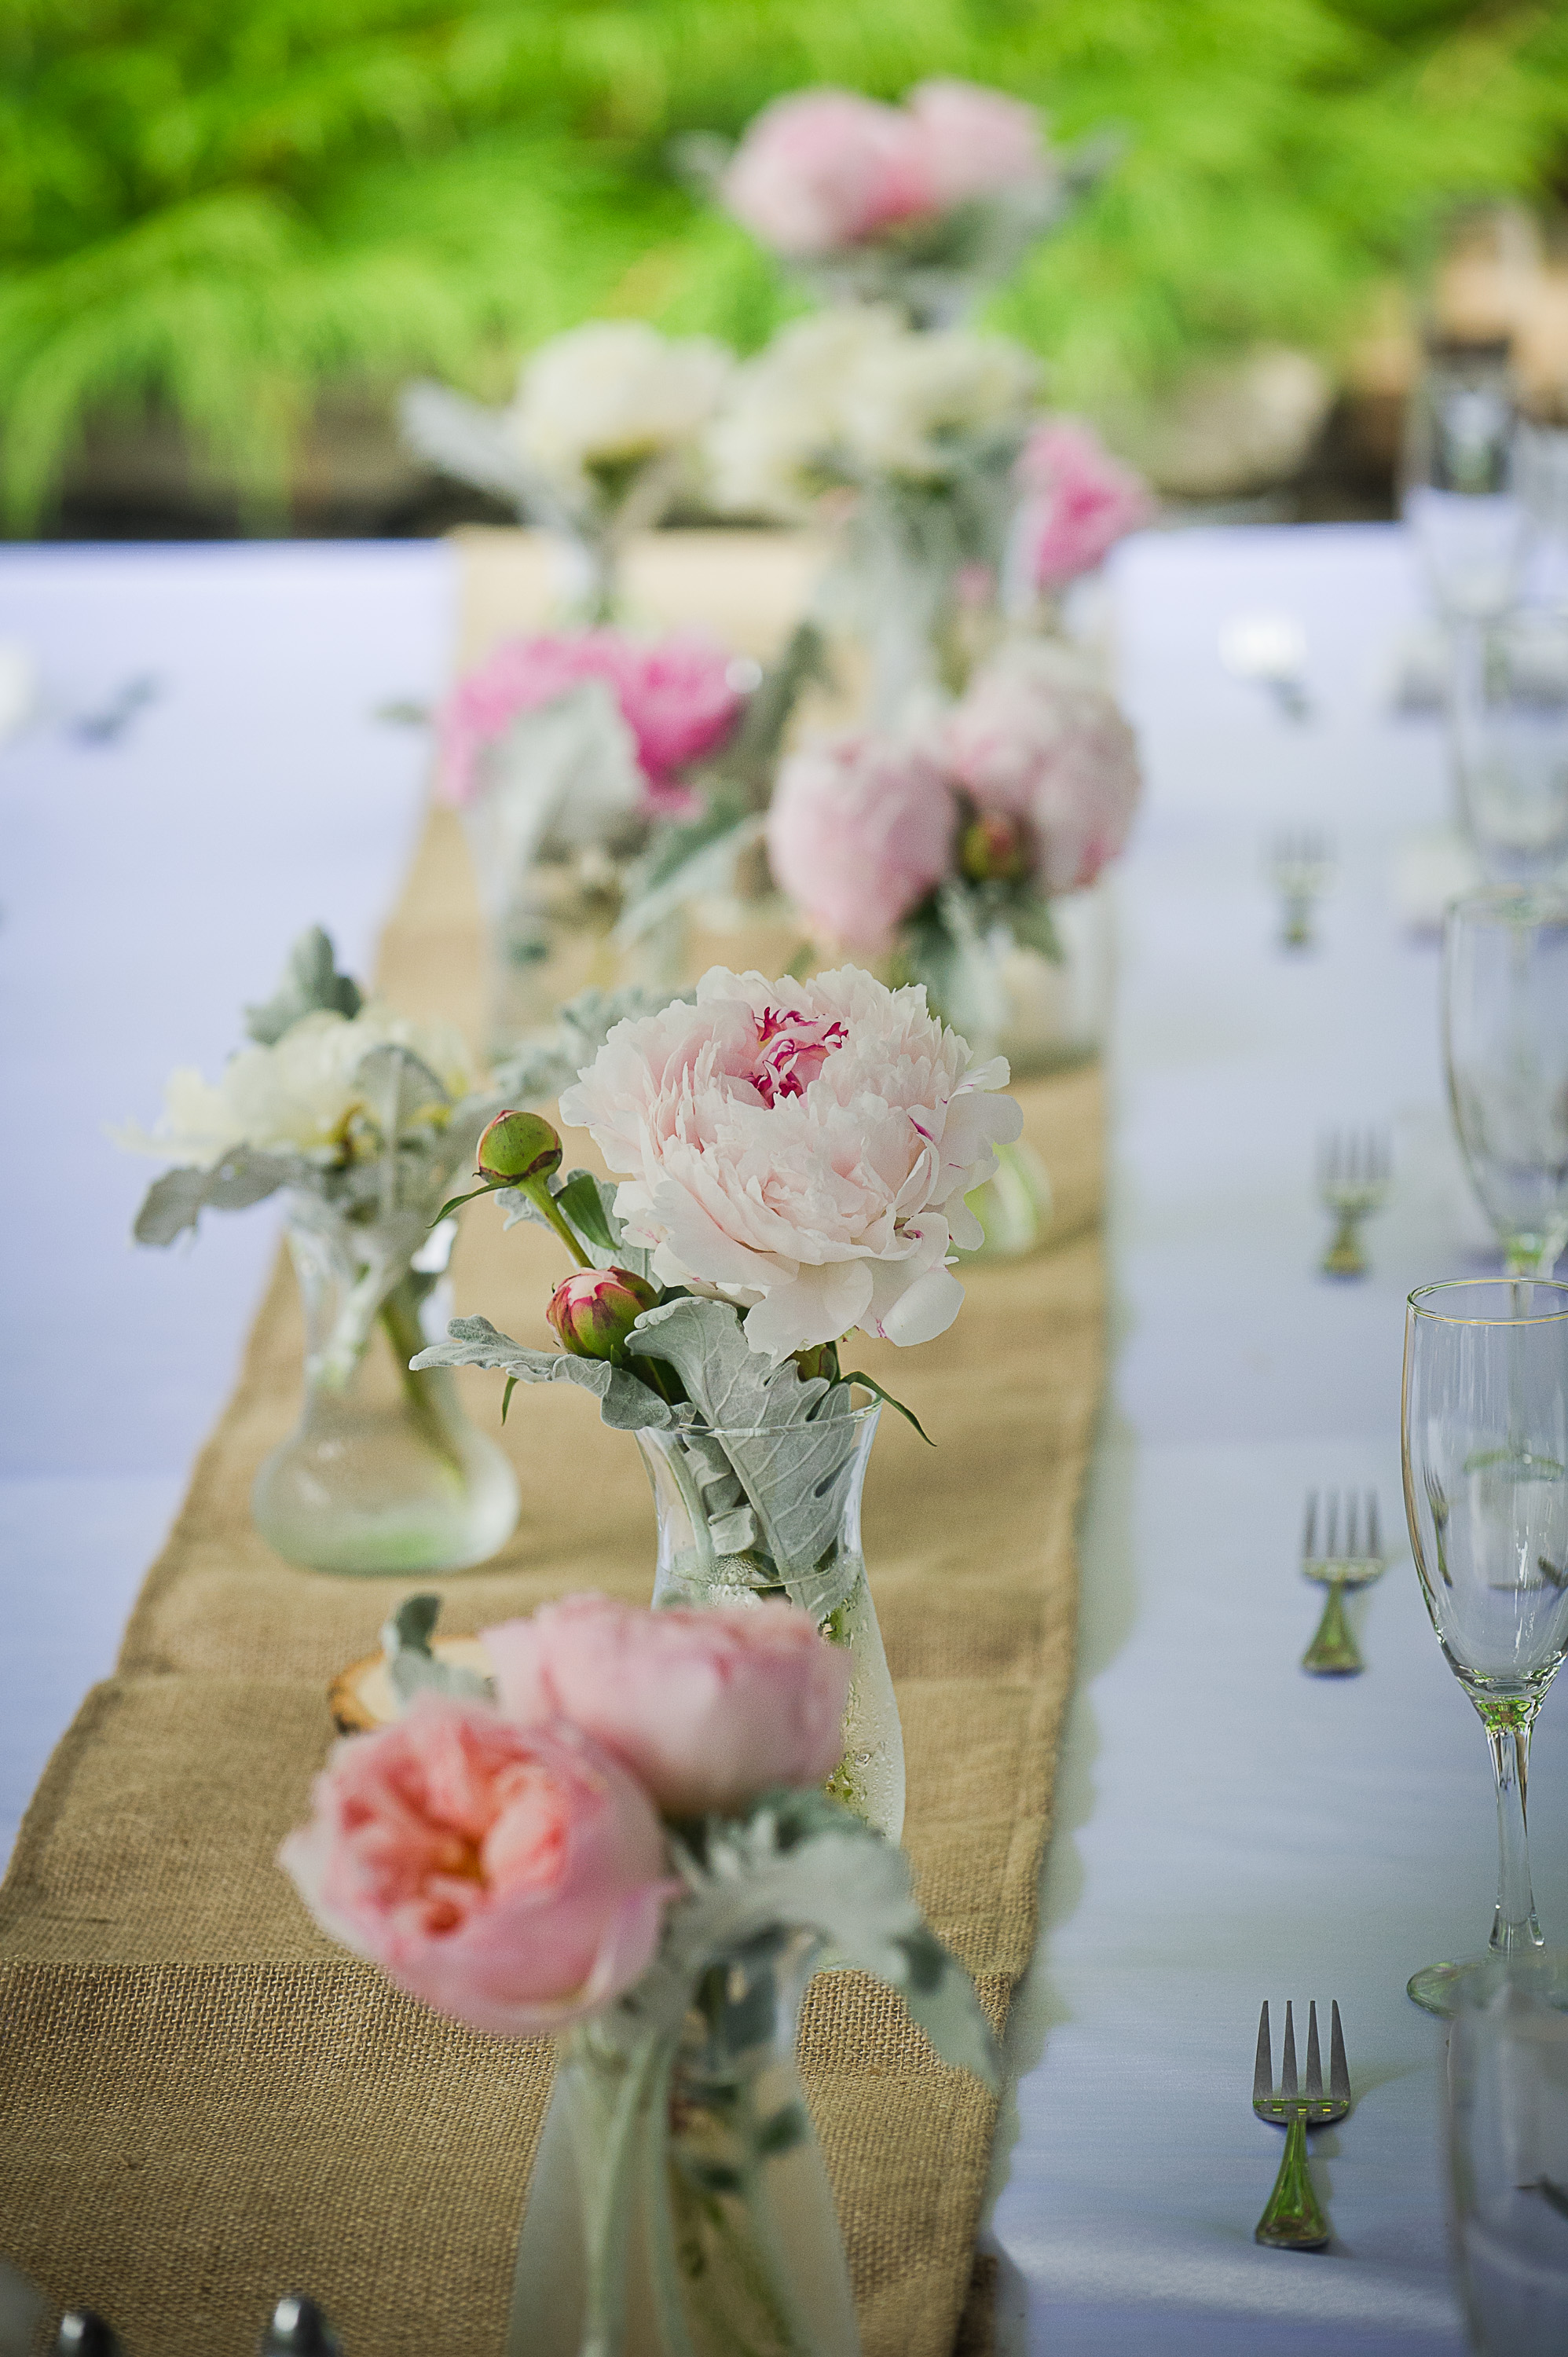 NYC-Wedding-Planner-Andrea-Freeman-Events-Hudson-Valley-Catskills-Private-Estate-14.jpg